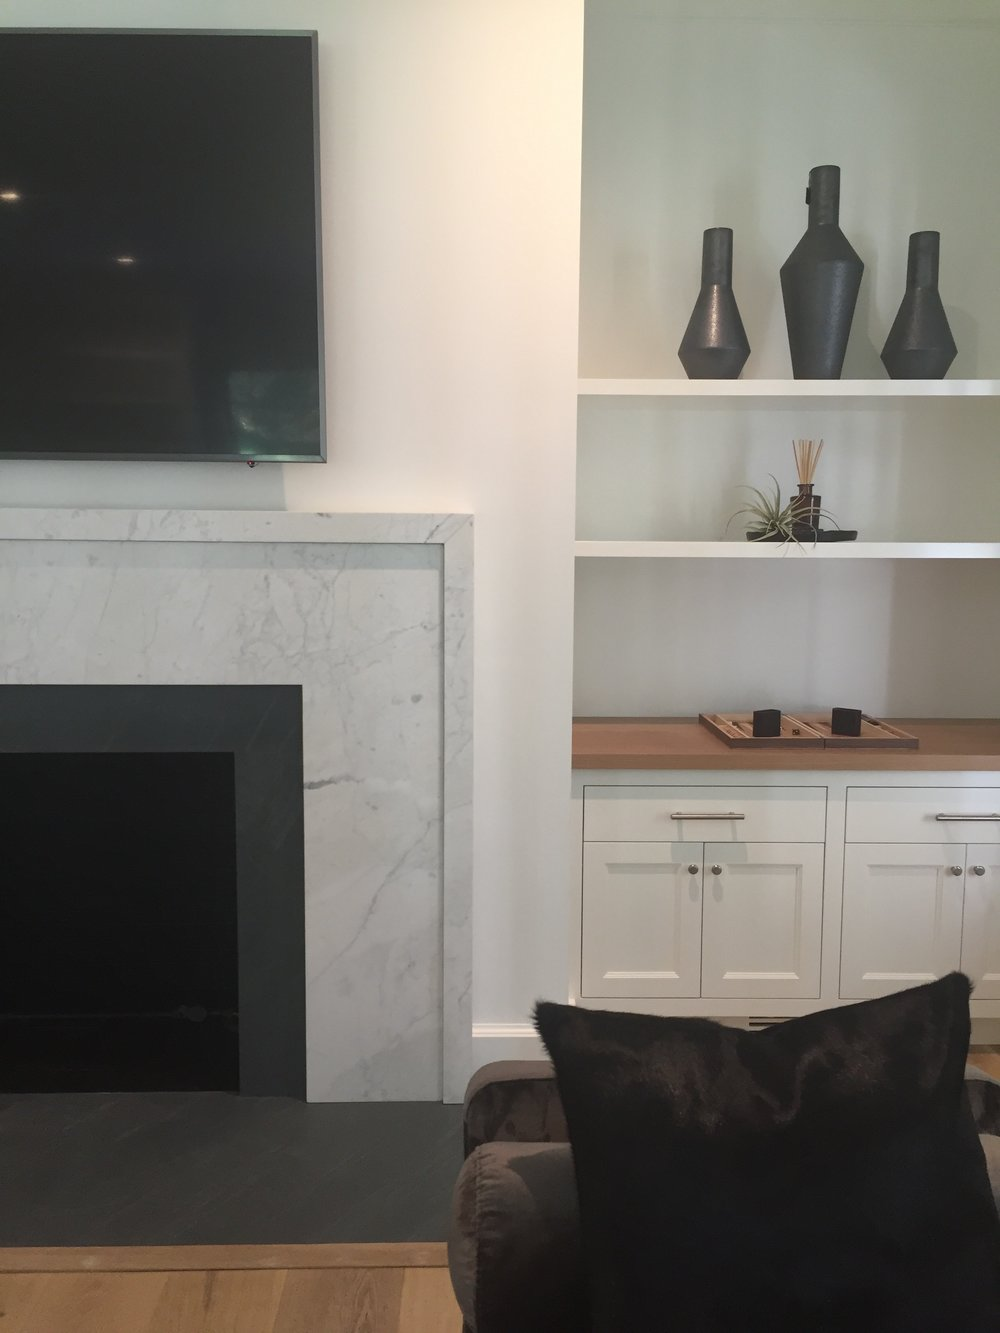 HIS OFFICE (DETAIL):  We ended up gutting an existing dark-wood claustrophobic library and opened it up with clean cabinetry and a simple fireplace surround composed of a dark gray basalt stone and a lighter gray marble surround with a thickened edge detail.